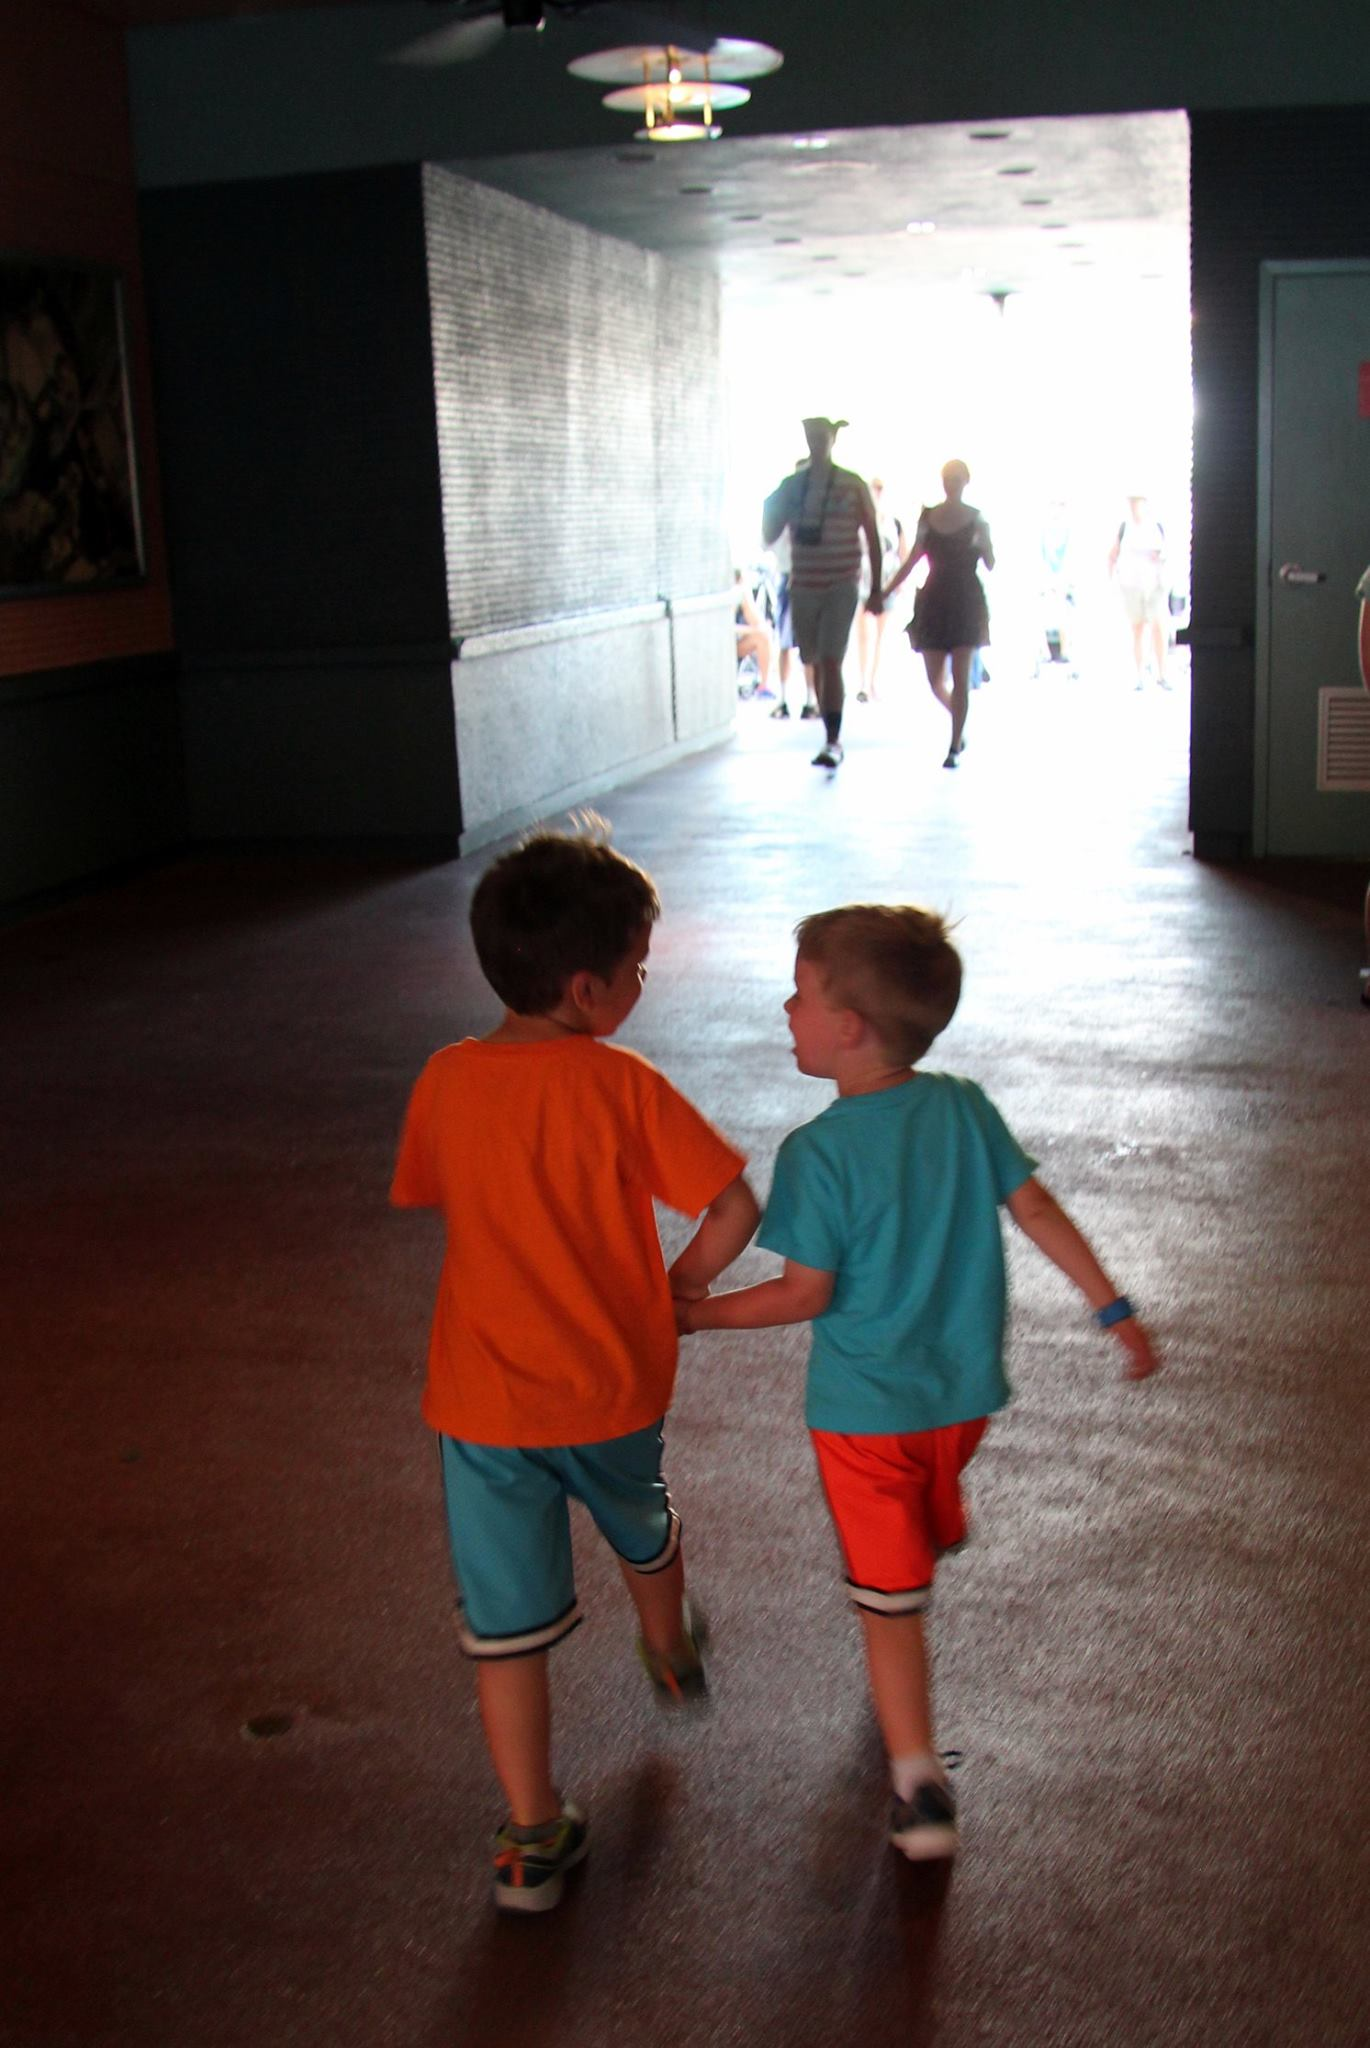 Disney with Little Ones: So Worth the Wait